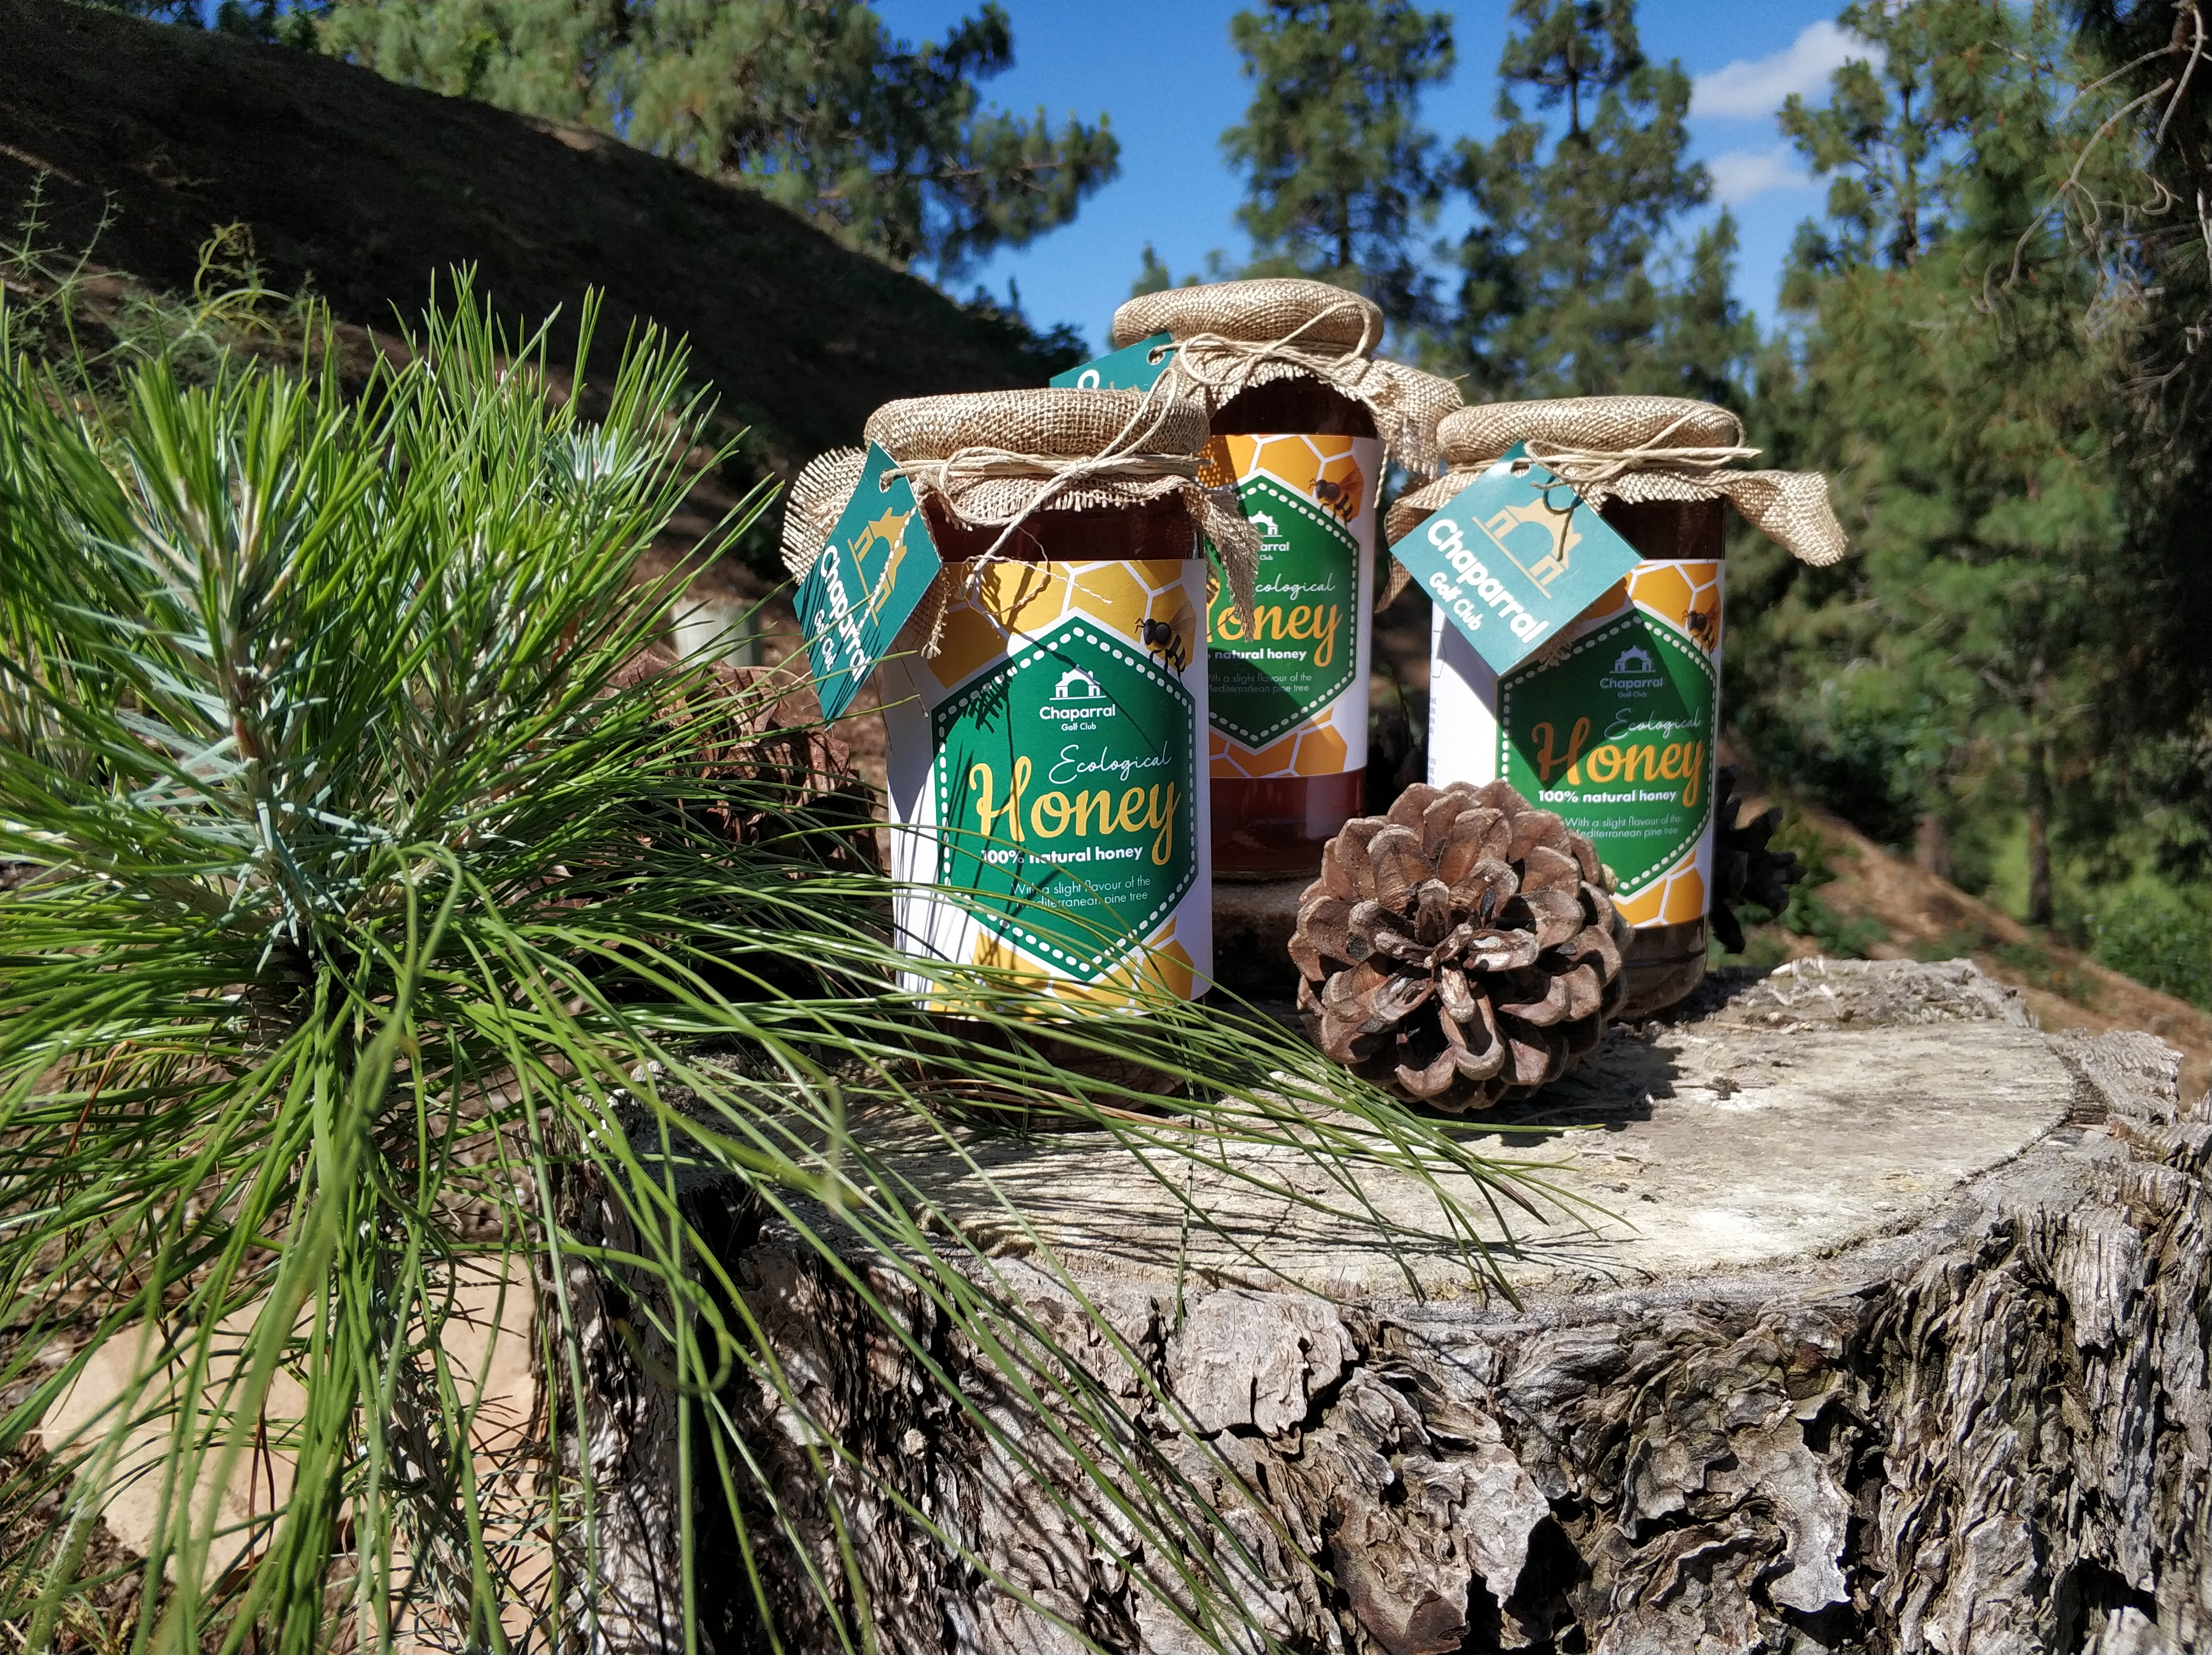 Ecological Honey by Chaparral Golf Club, Costa del Sol